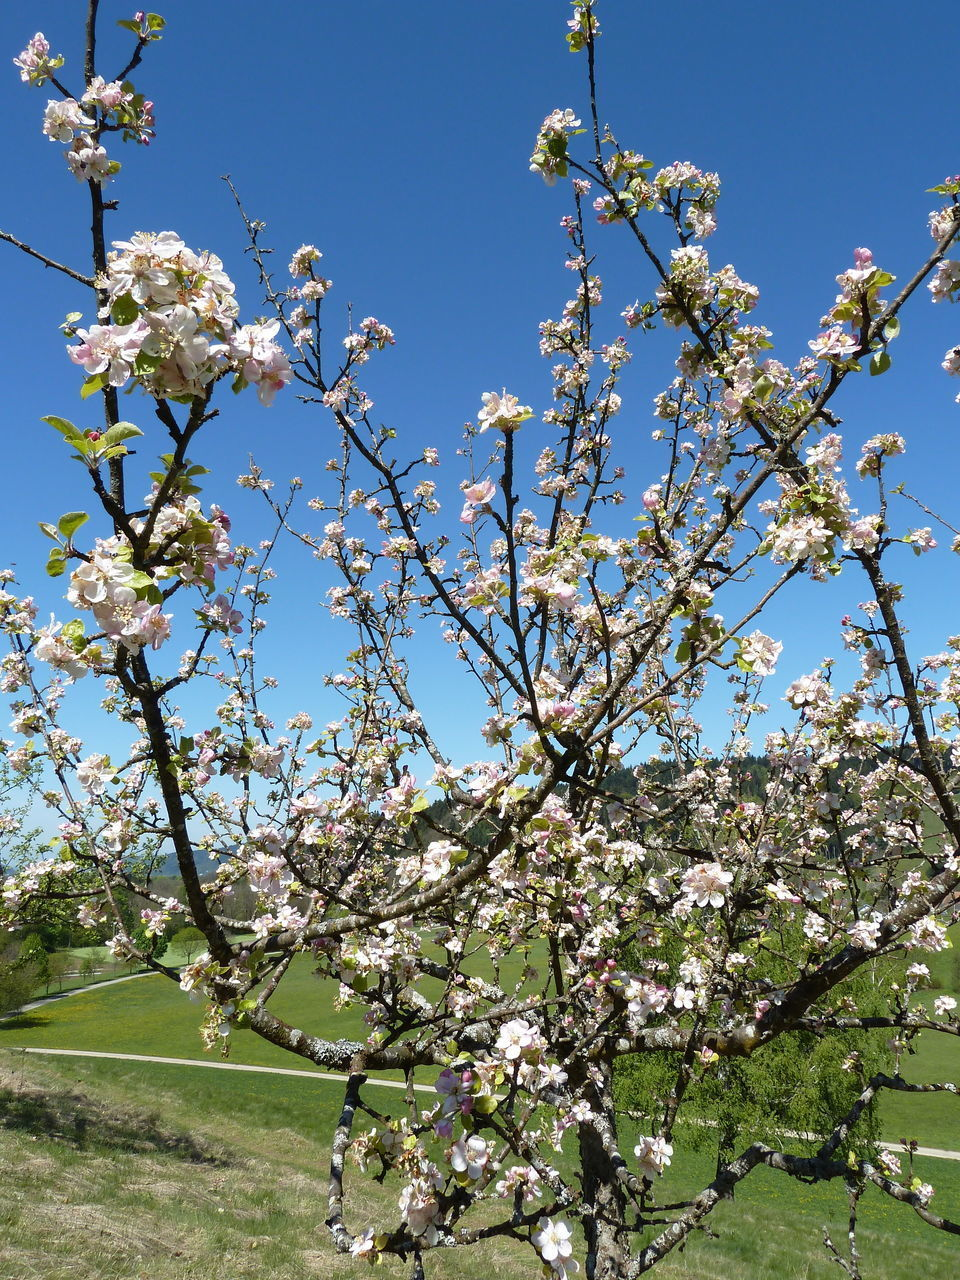 flower, blossom, growth, nature, fragility, apple blossom, tree, branch, beauty in nature, apple tree, springtime, botany, cherry tree, orchard, freshness, spring, no people, white color, clear sky, blooming, petal, day, outdoors, flower head, close-up